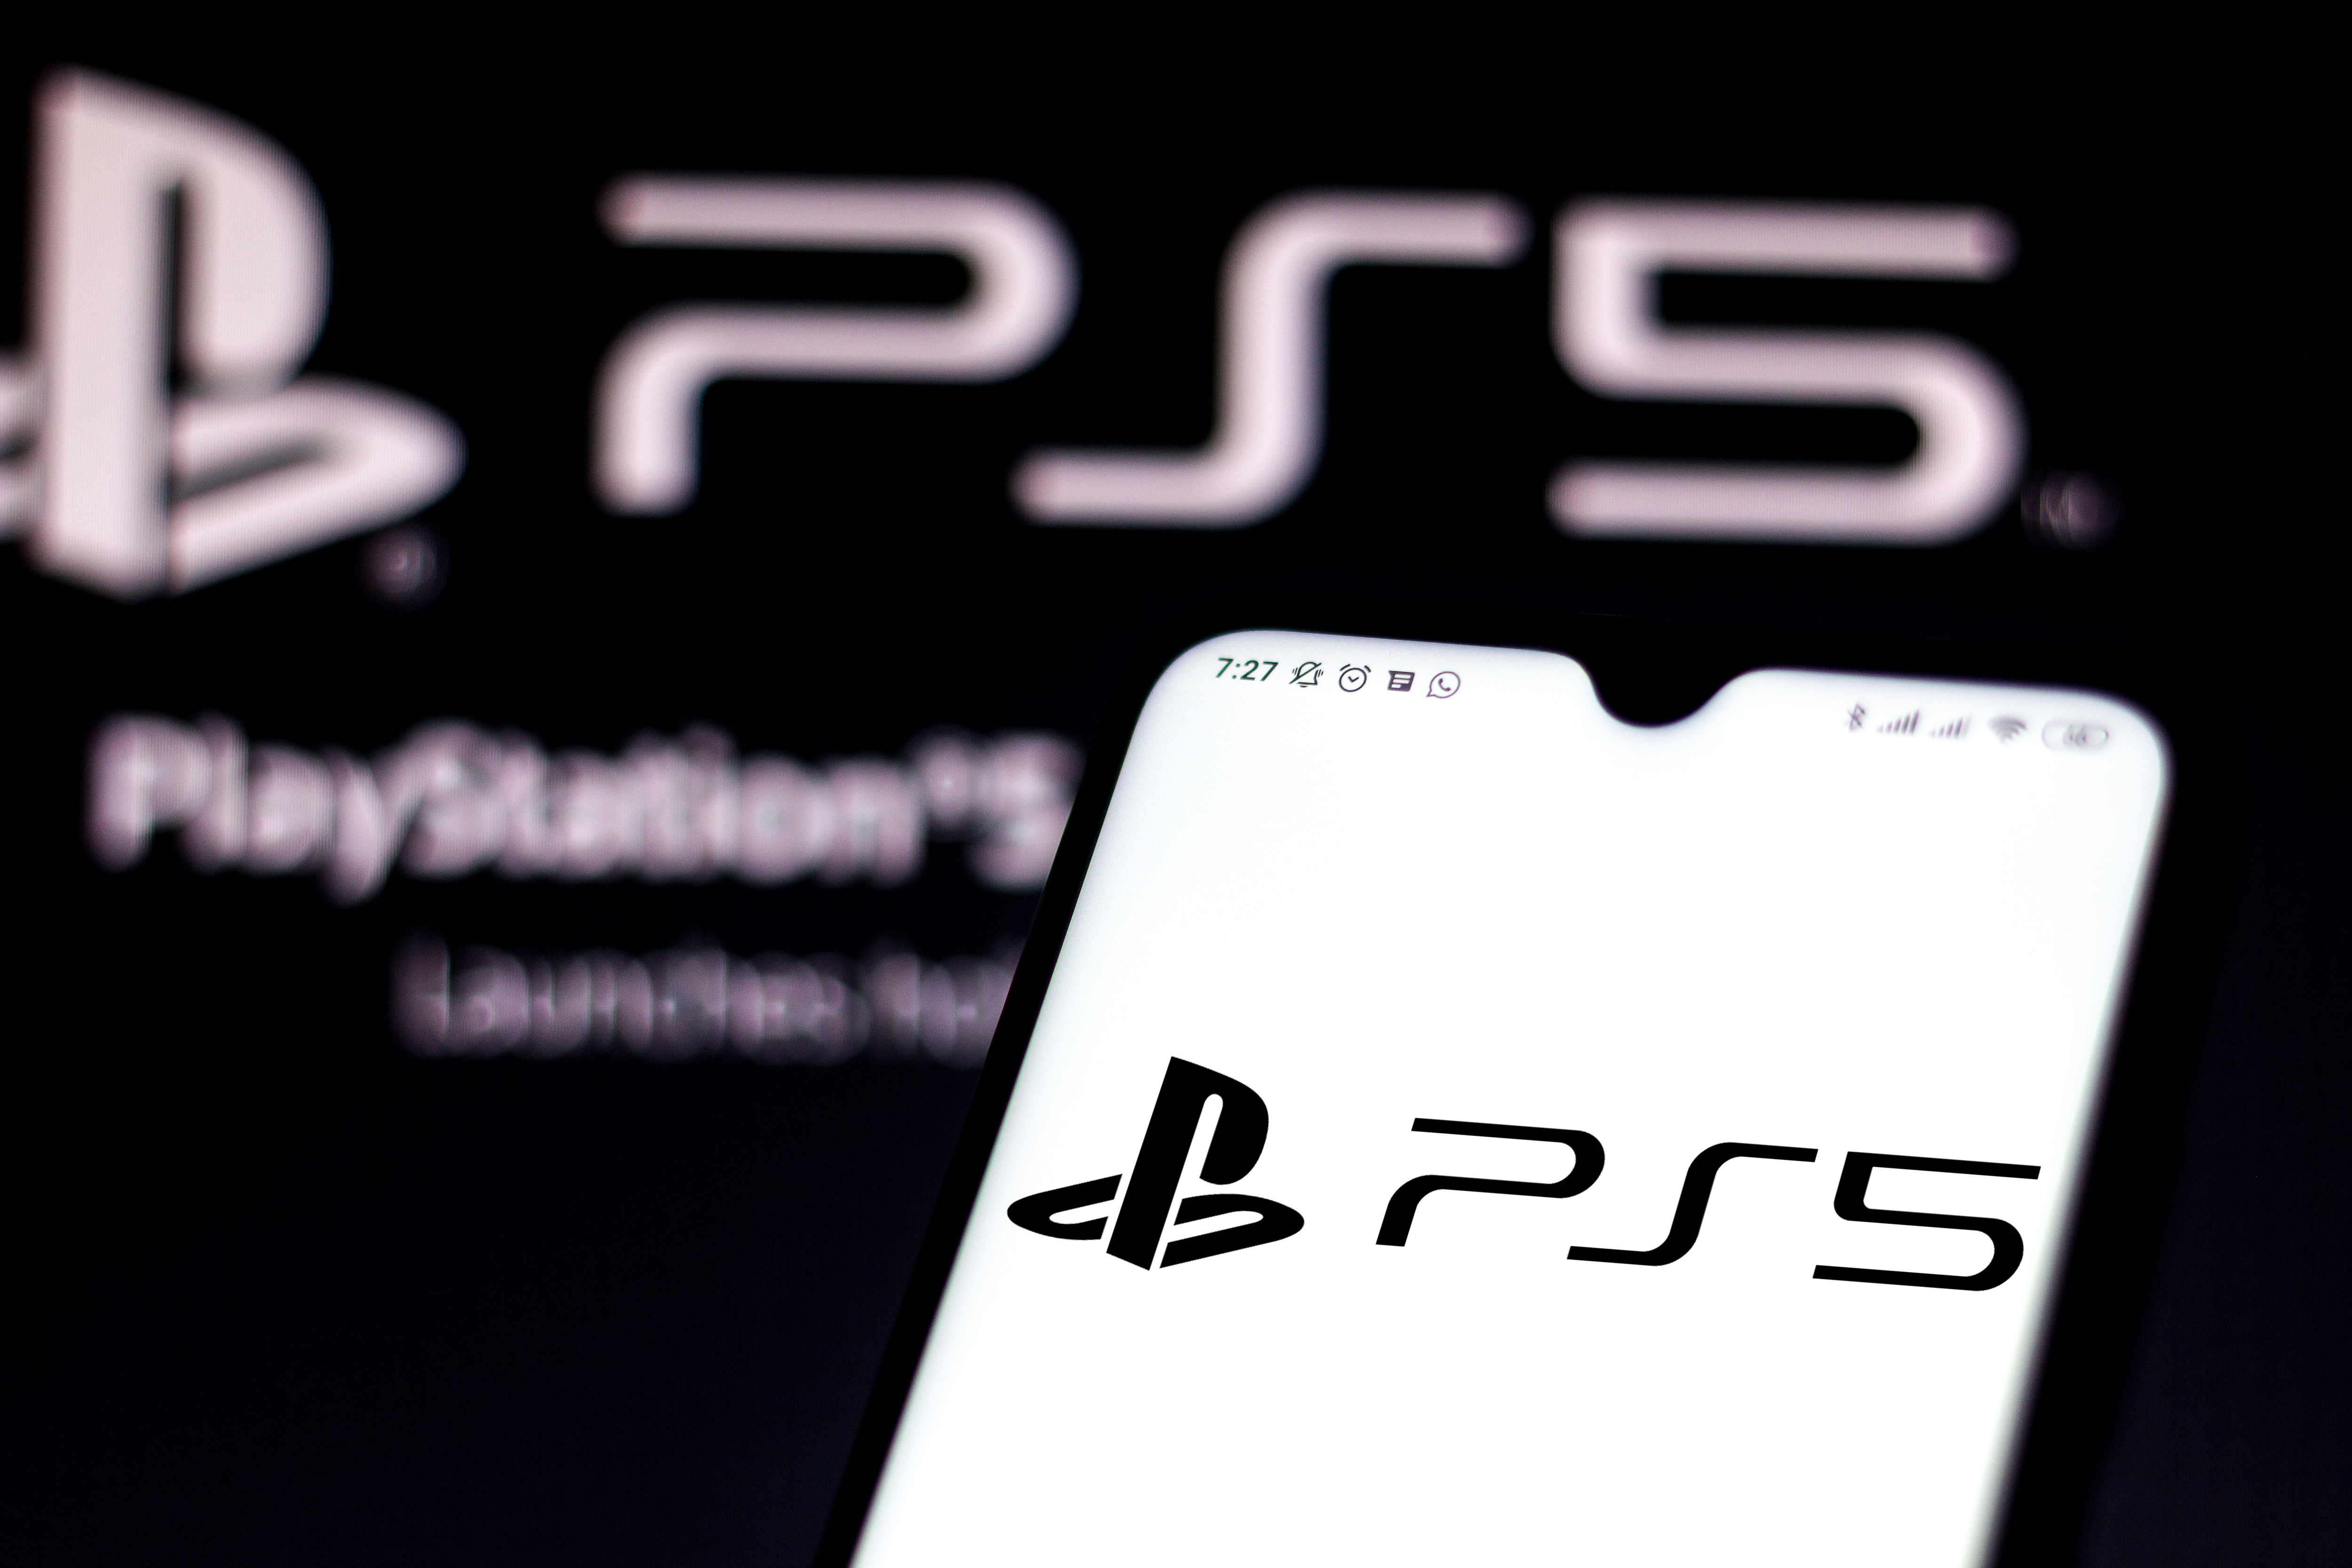 Playstation 5 graphic